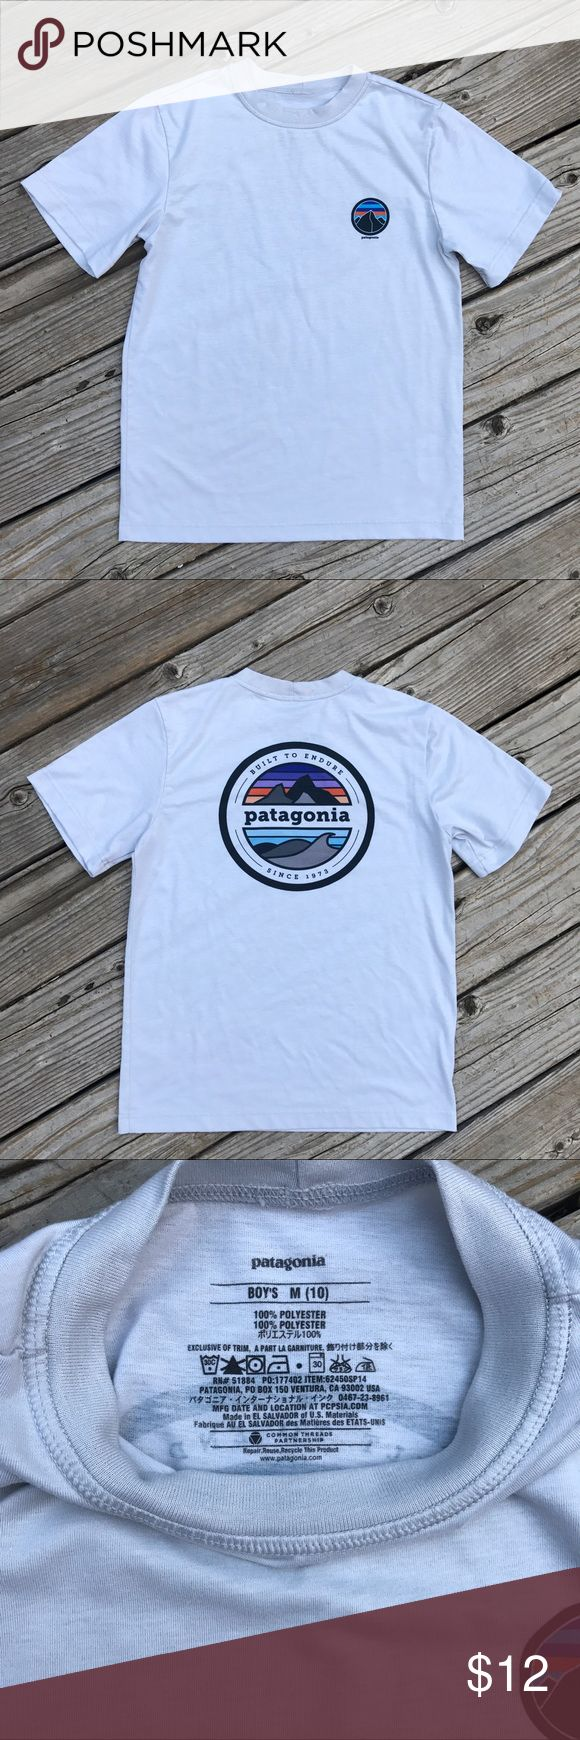 Patagonia T-Shirt Sz: M(10) Boys short sleeve T with logo on the vest and back Patagonia Shirts & Tops Tees - Short Sleeve